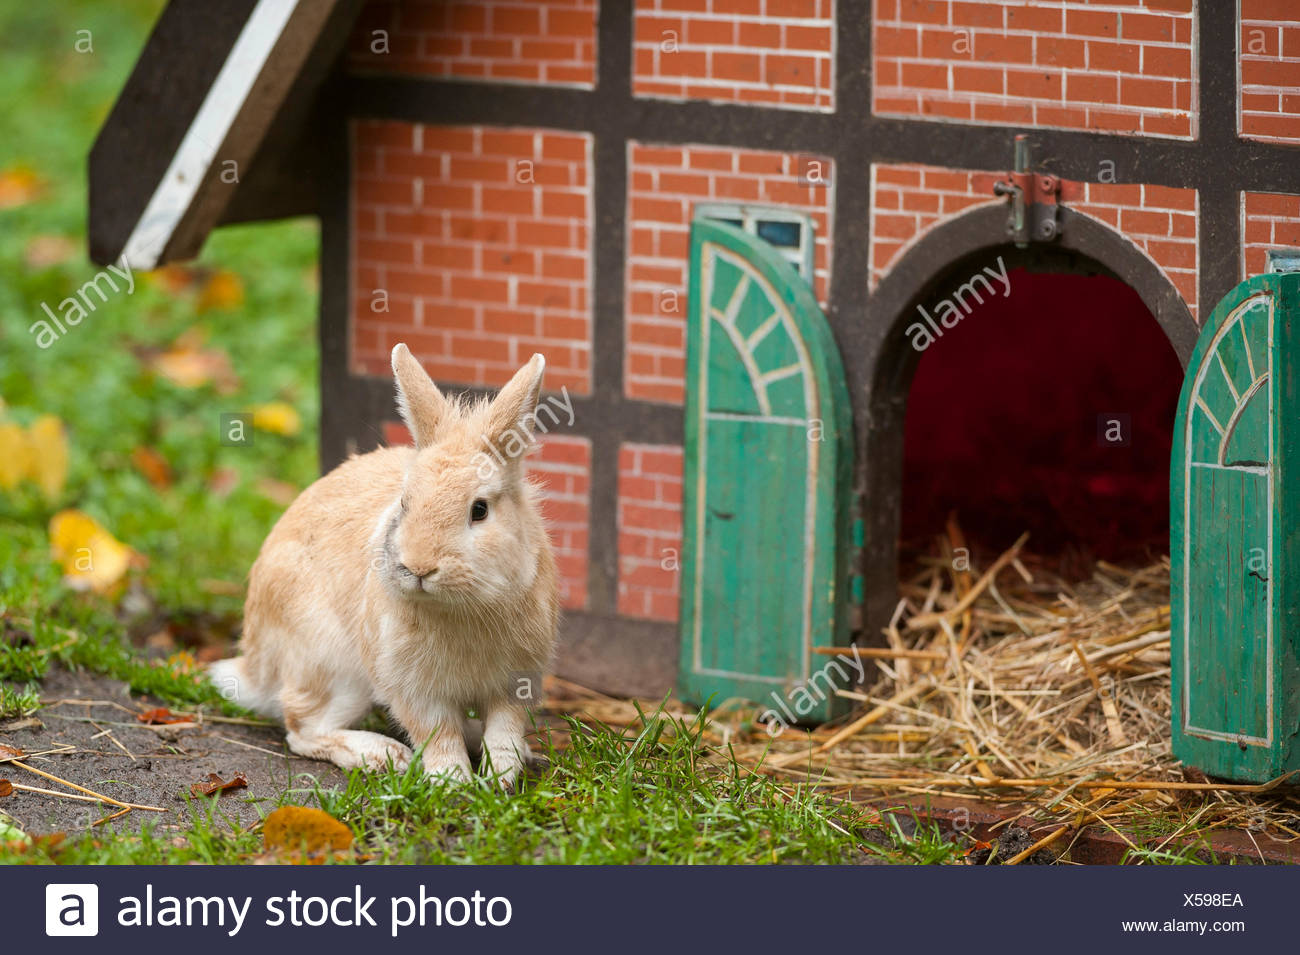 Domestic Rabbit (Oryctolagus cuniculus f. domestica) in front of a half-timbered house as a hutch, Hamburg - Stock Image